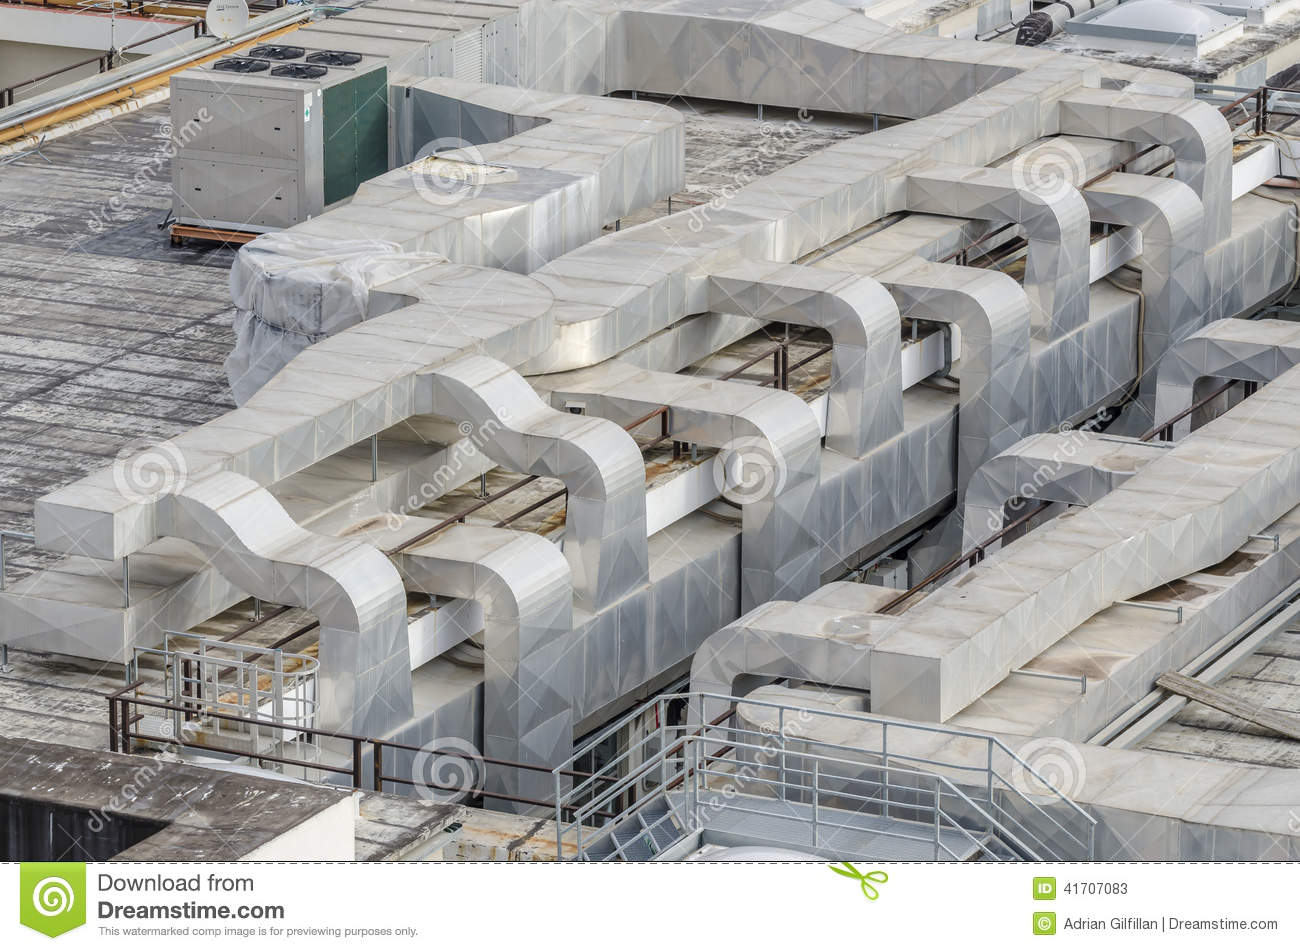 Air conditioning ductwork on a building roof top. #6C5F4D